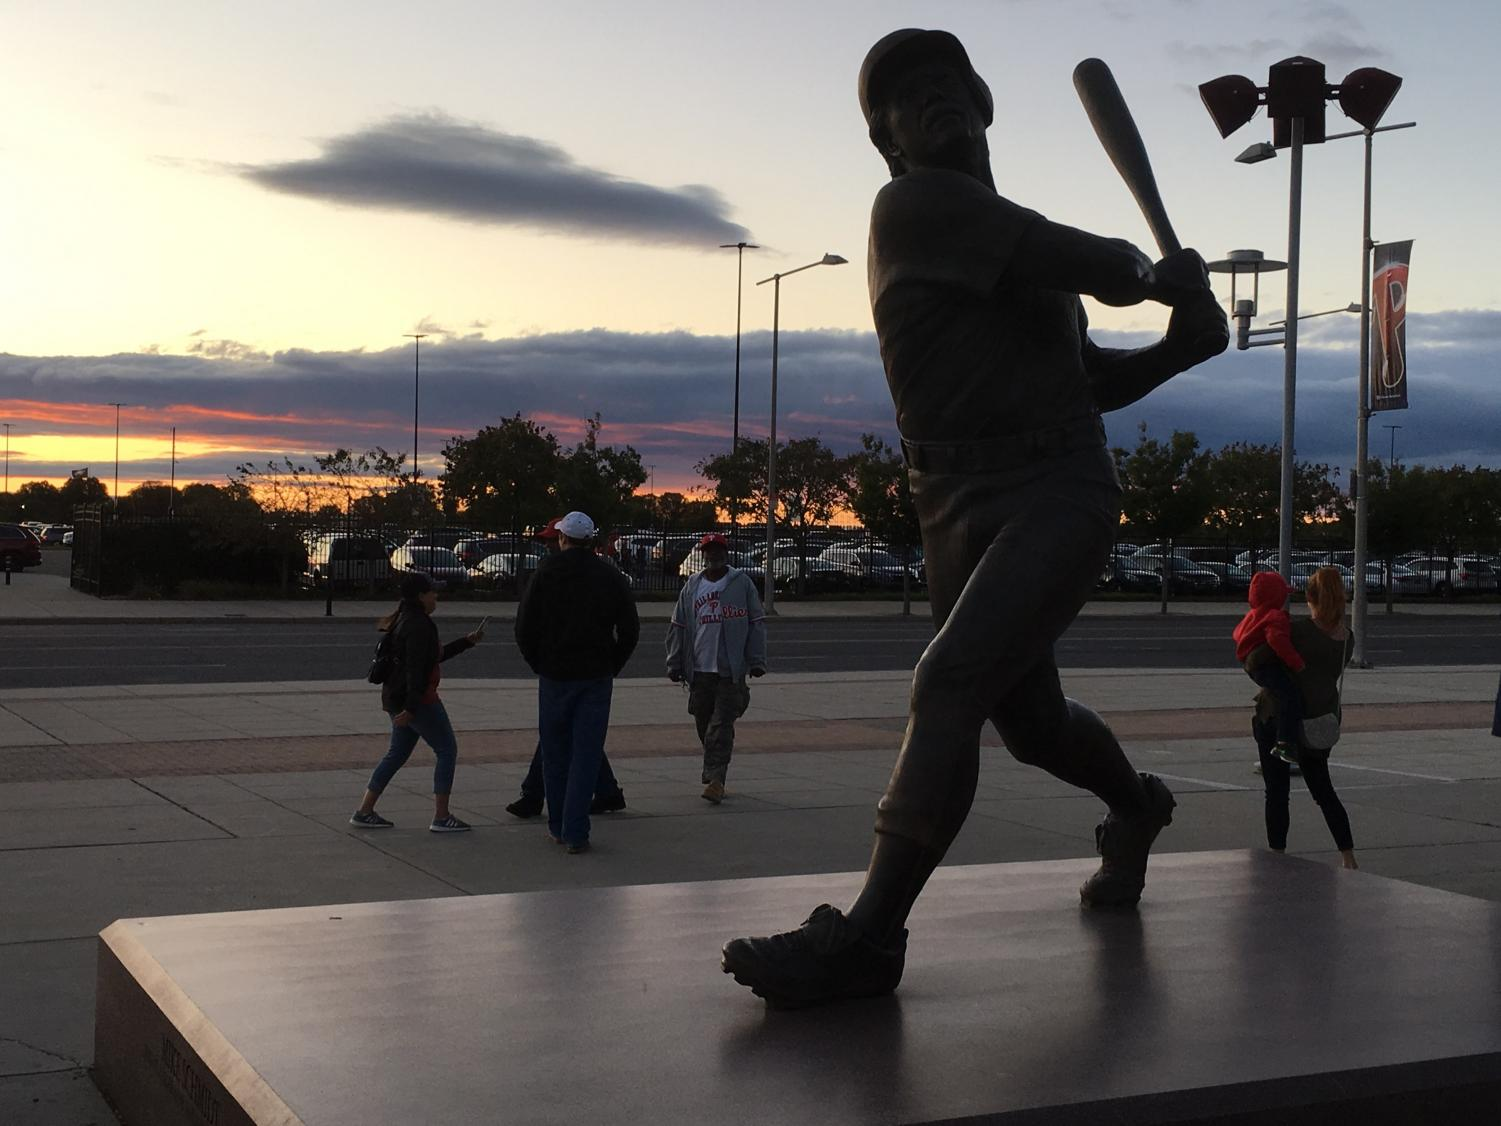 Many athletes, such as Mike Schmidt, have a statue of themselves in Philadelphia's Sports Complex.